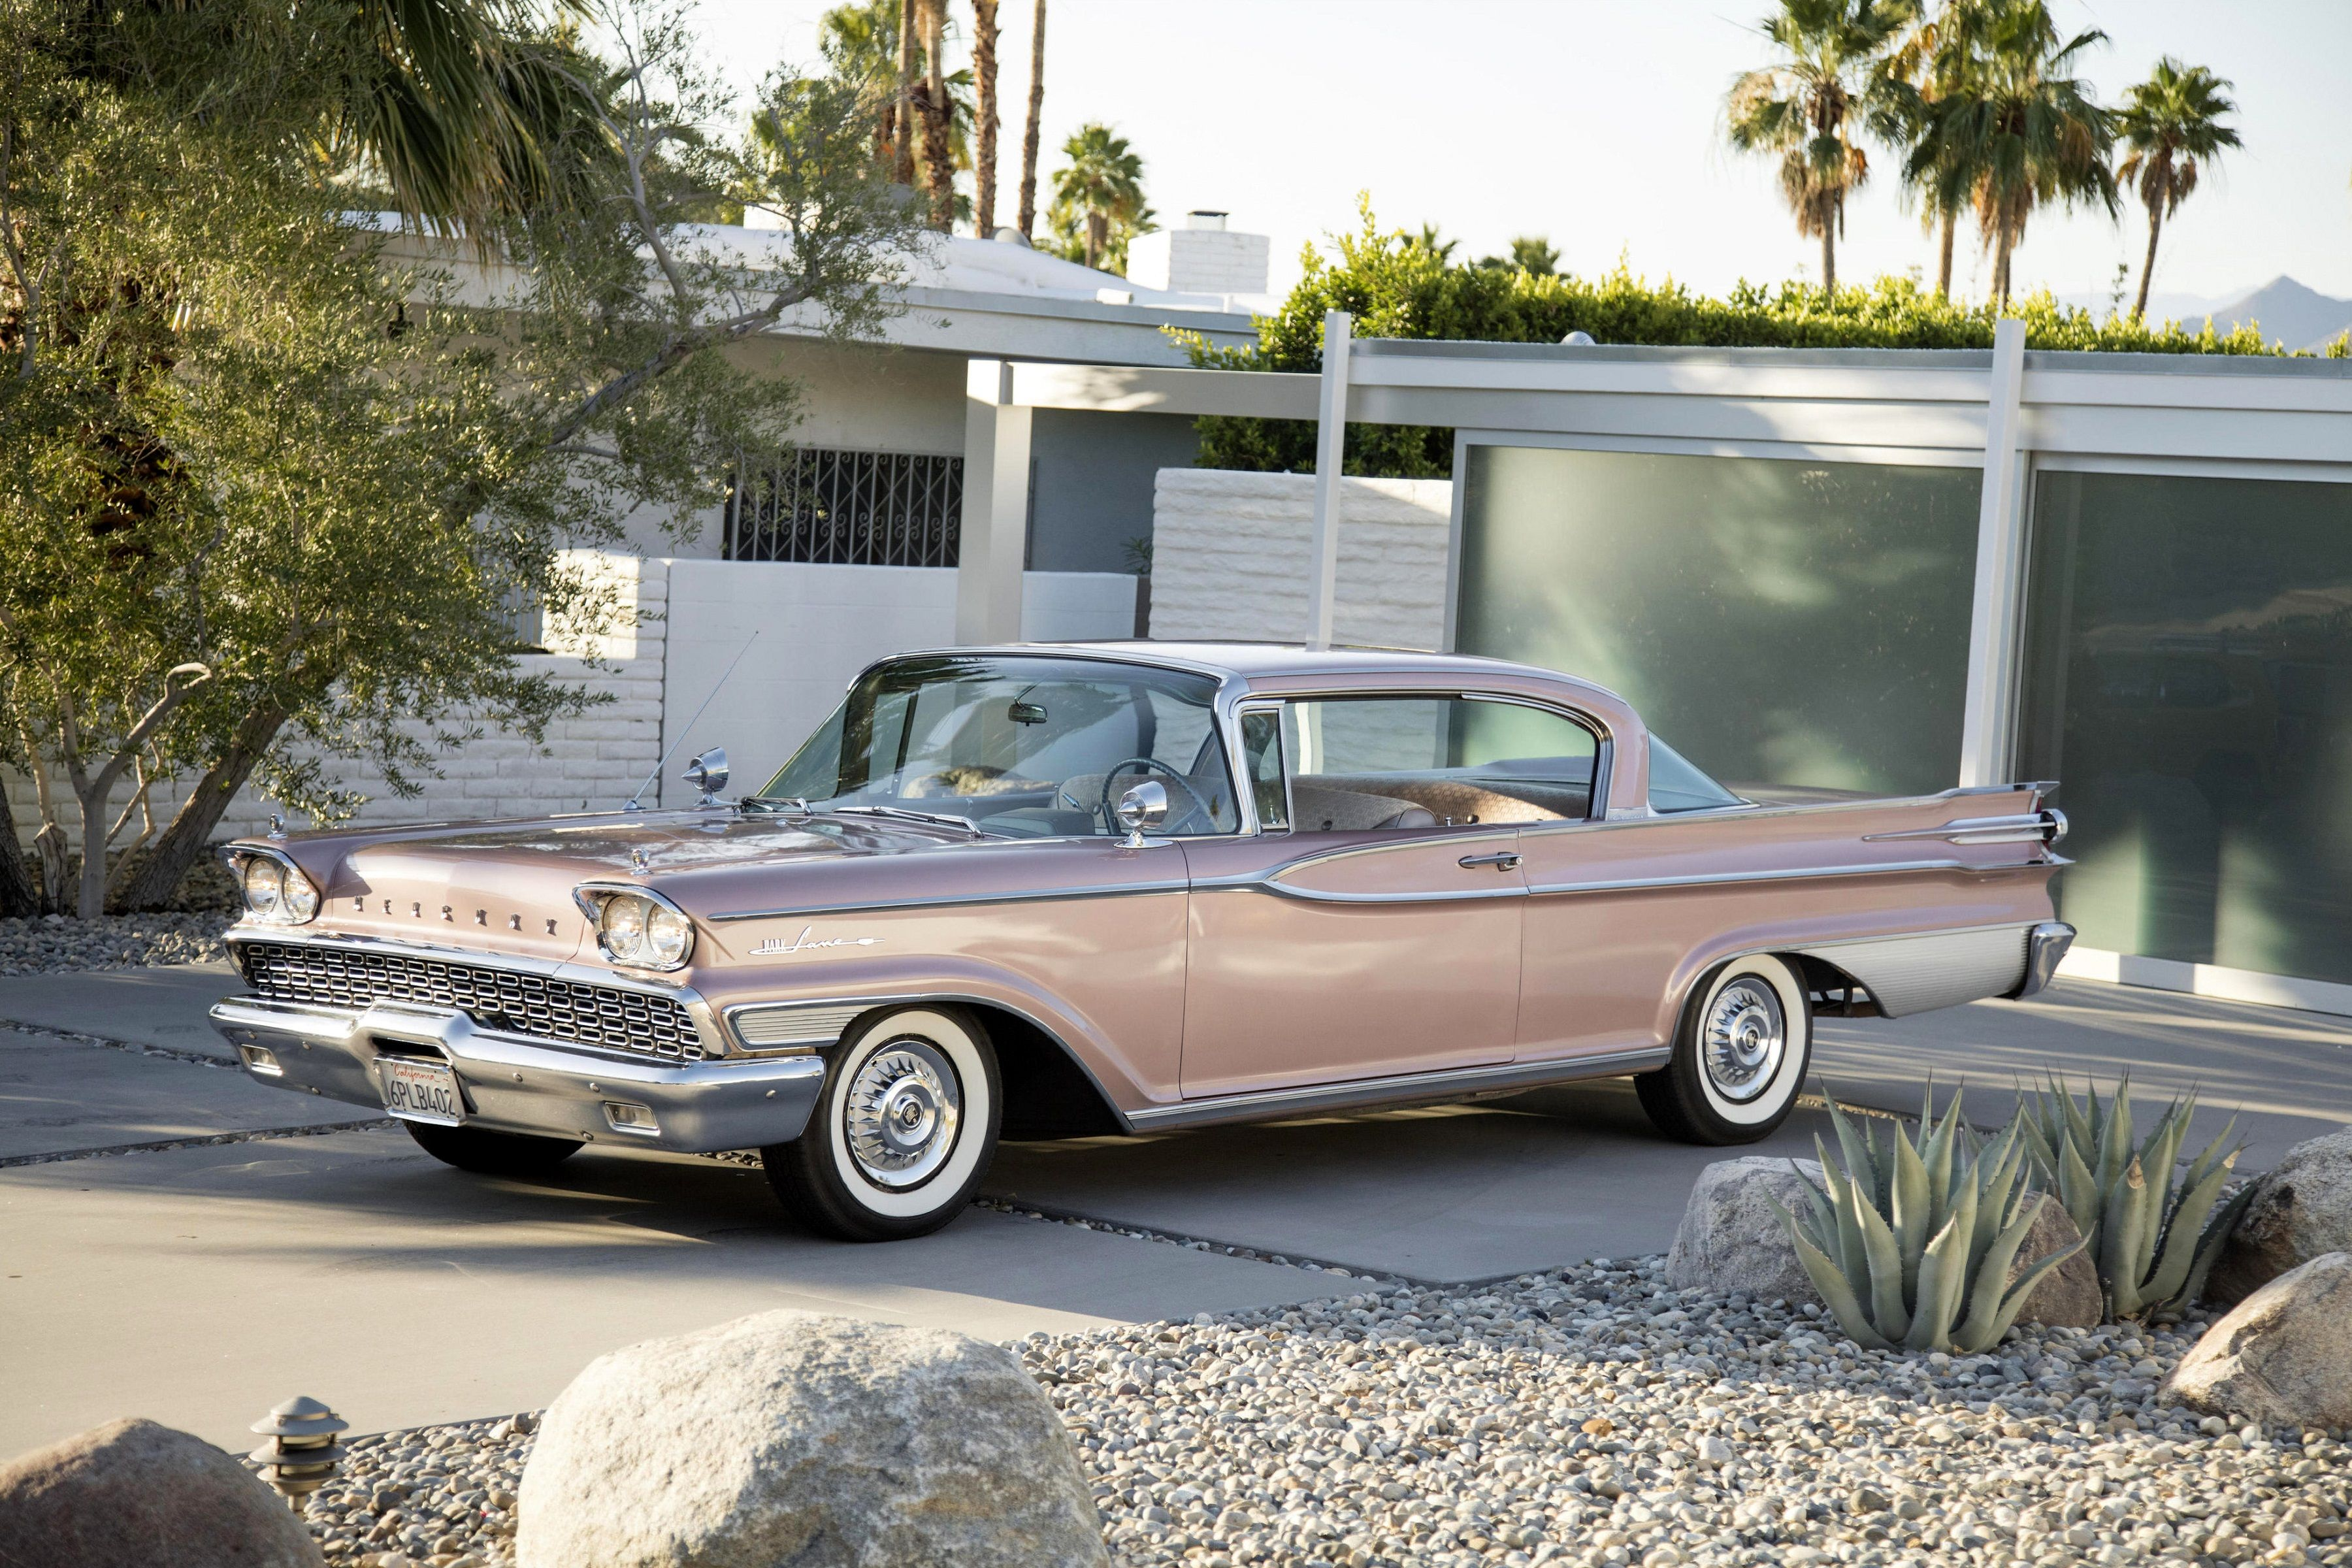 1960 mercury park lane cruiser moving art pinterest cars american classic cars and lincoln mercury